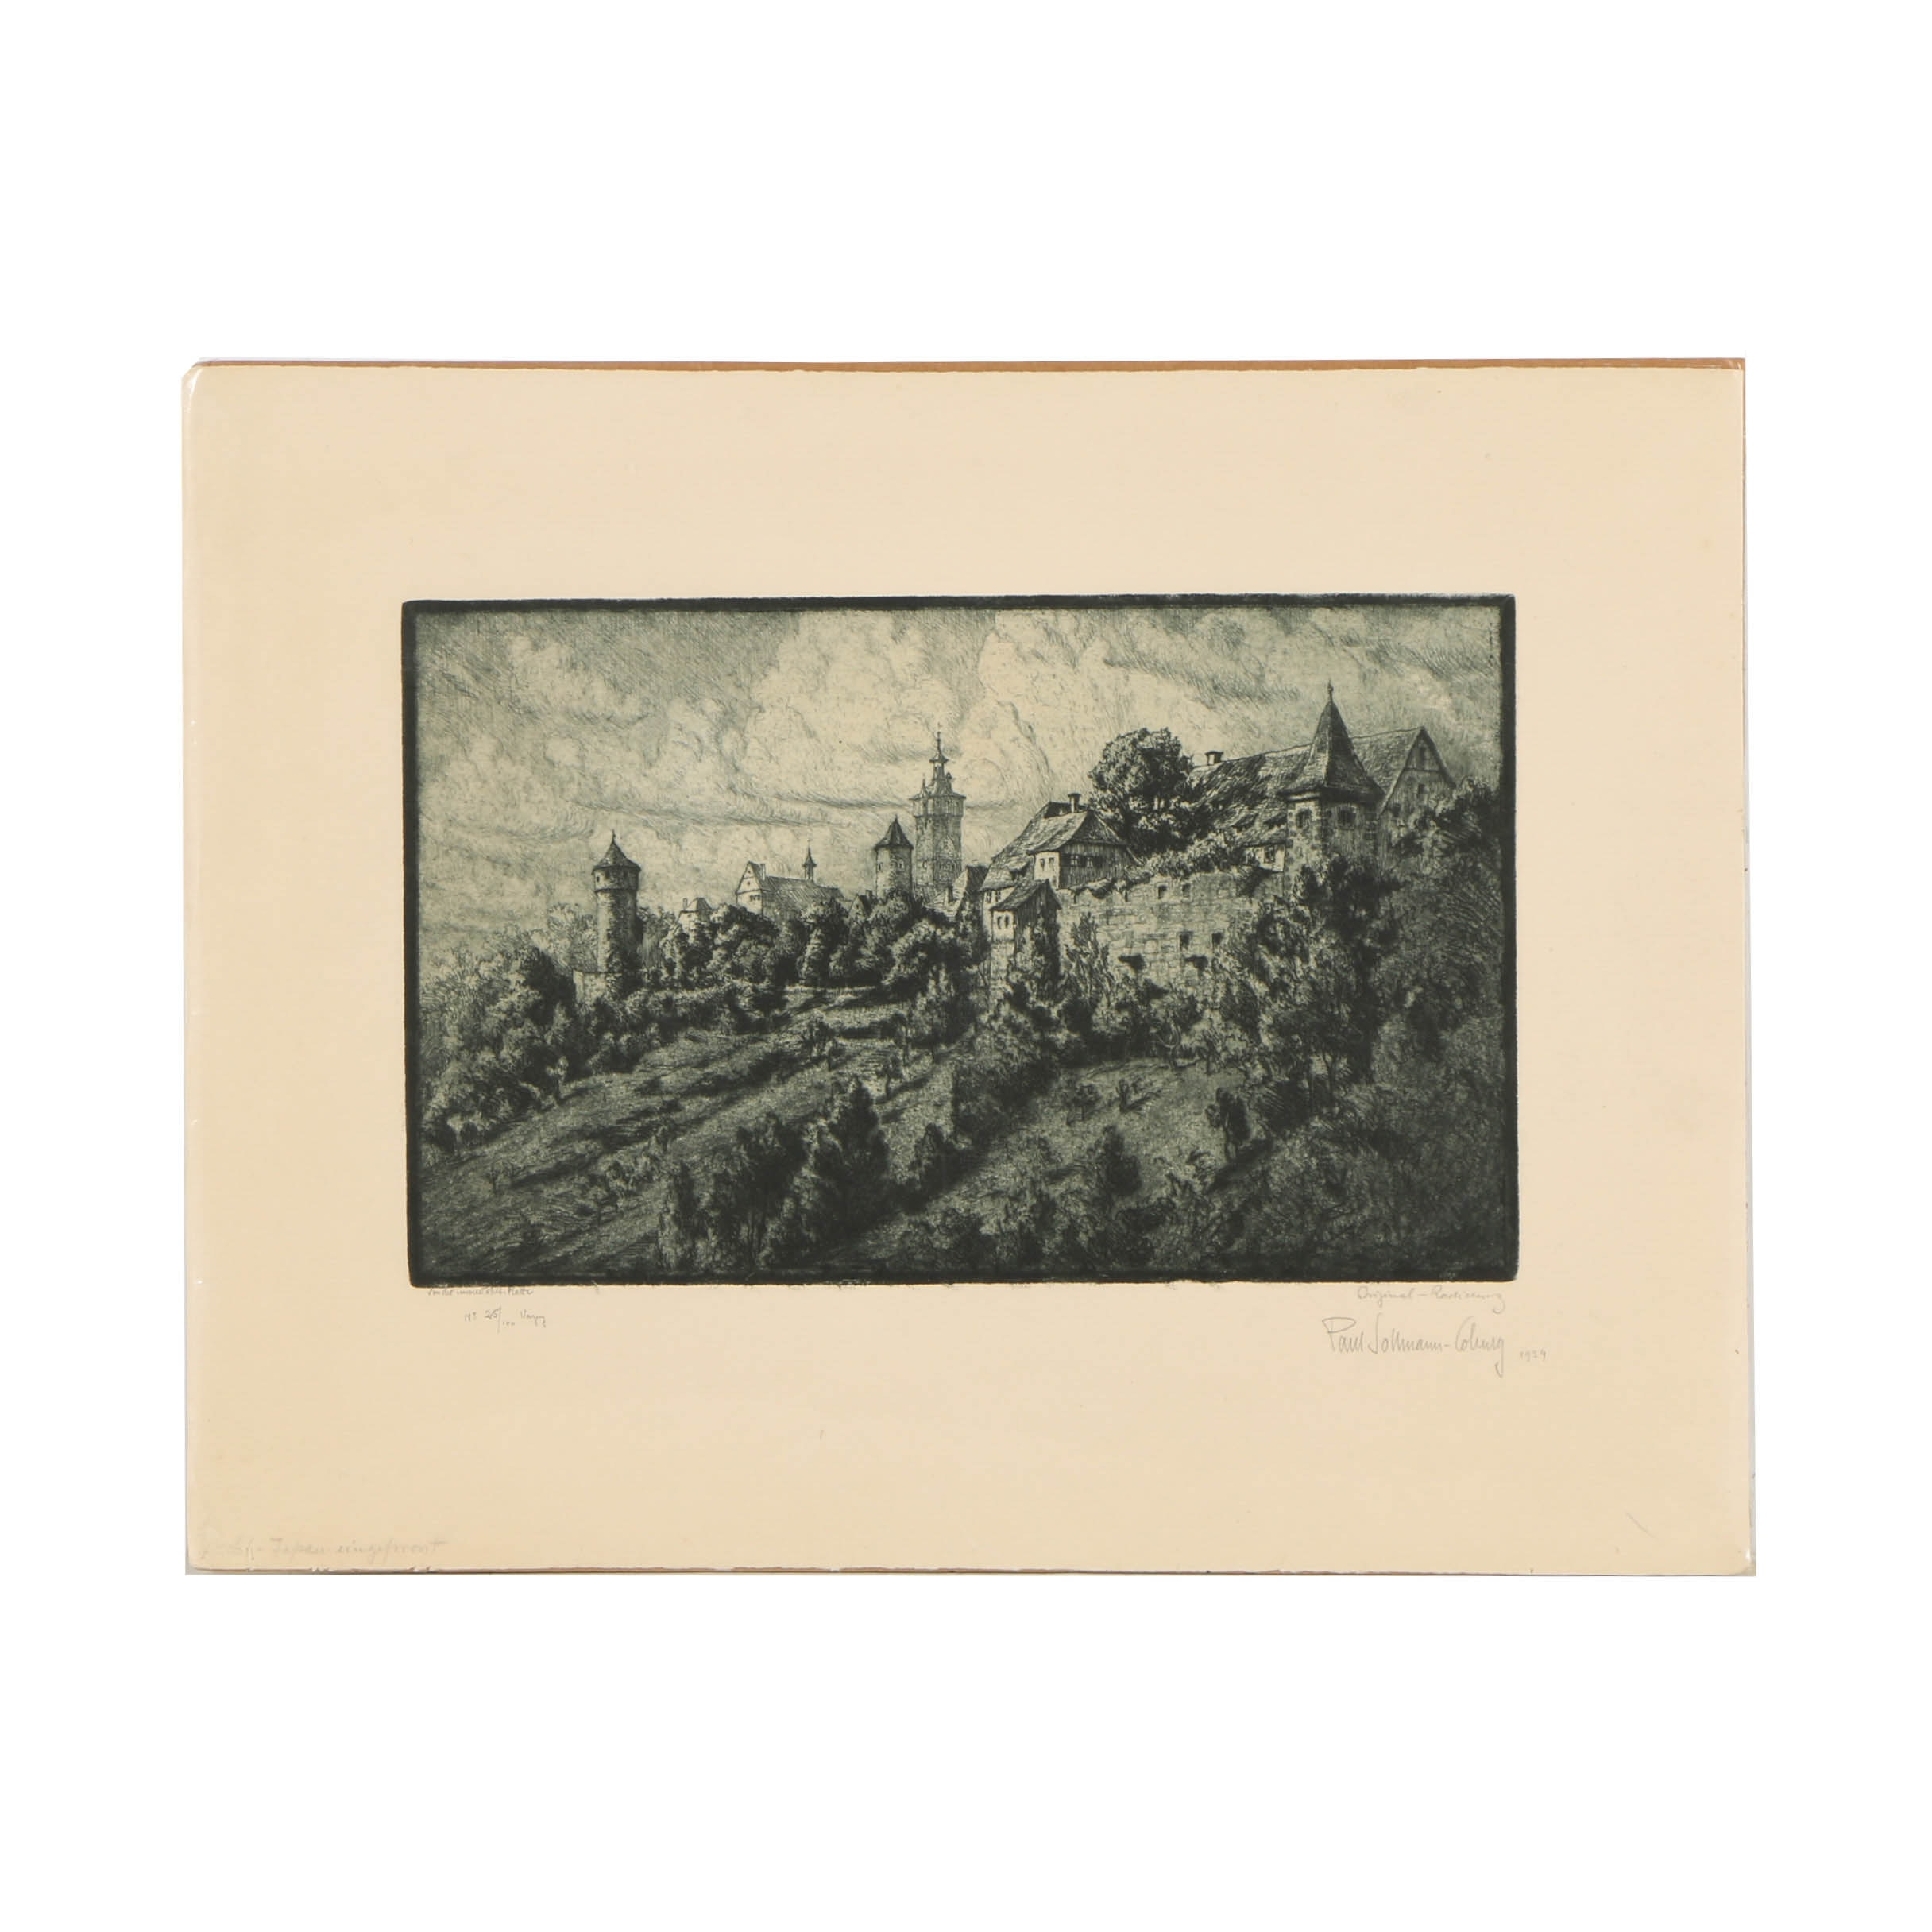 Paul Sollmann Rothenburg Limited Edition Etching on Paper of a Village Landscape